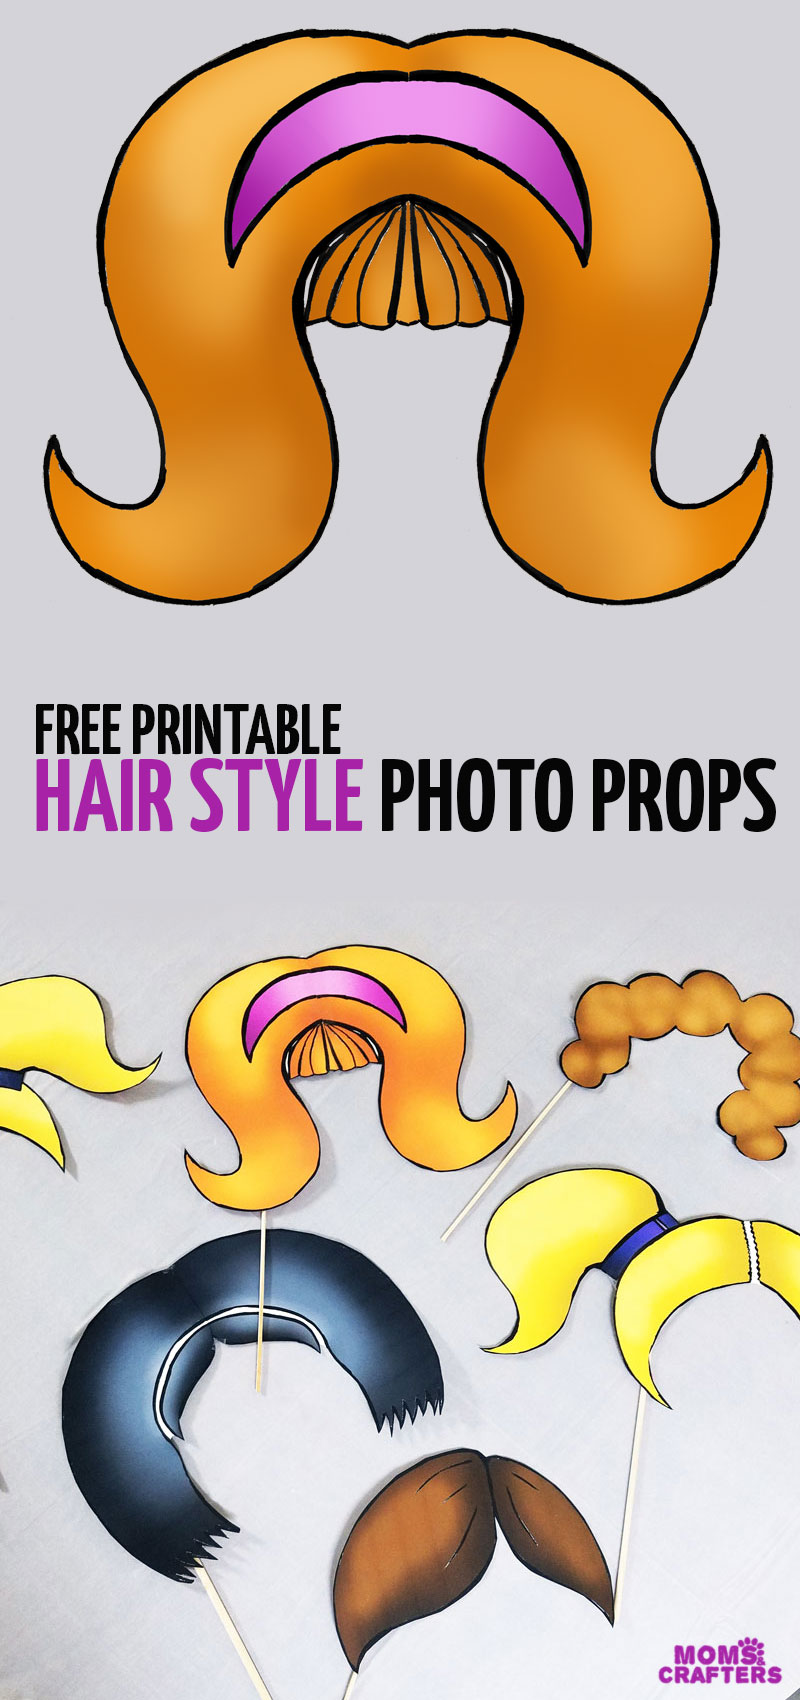 Photo Booth Props Big Hair Styles Moms And Crafters